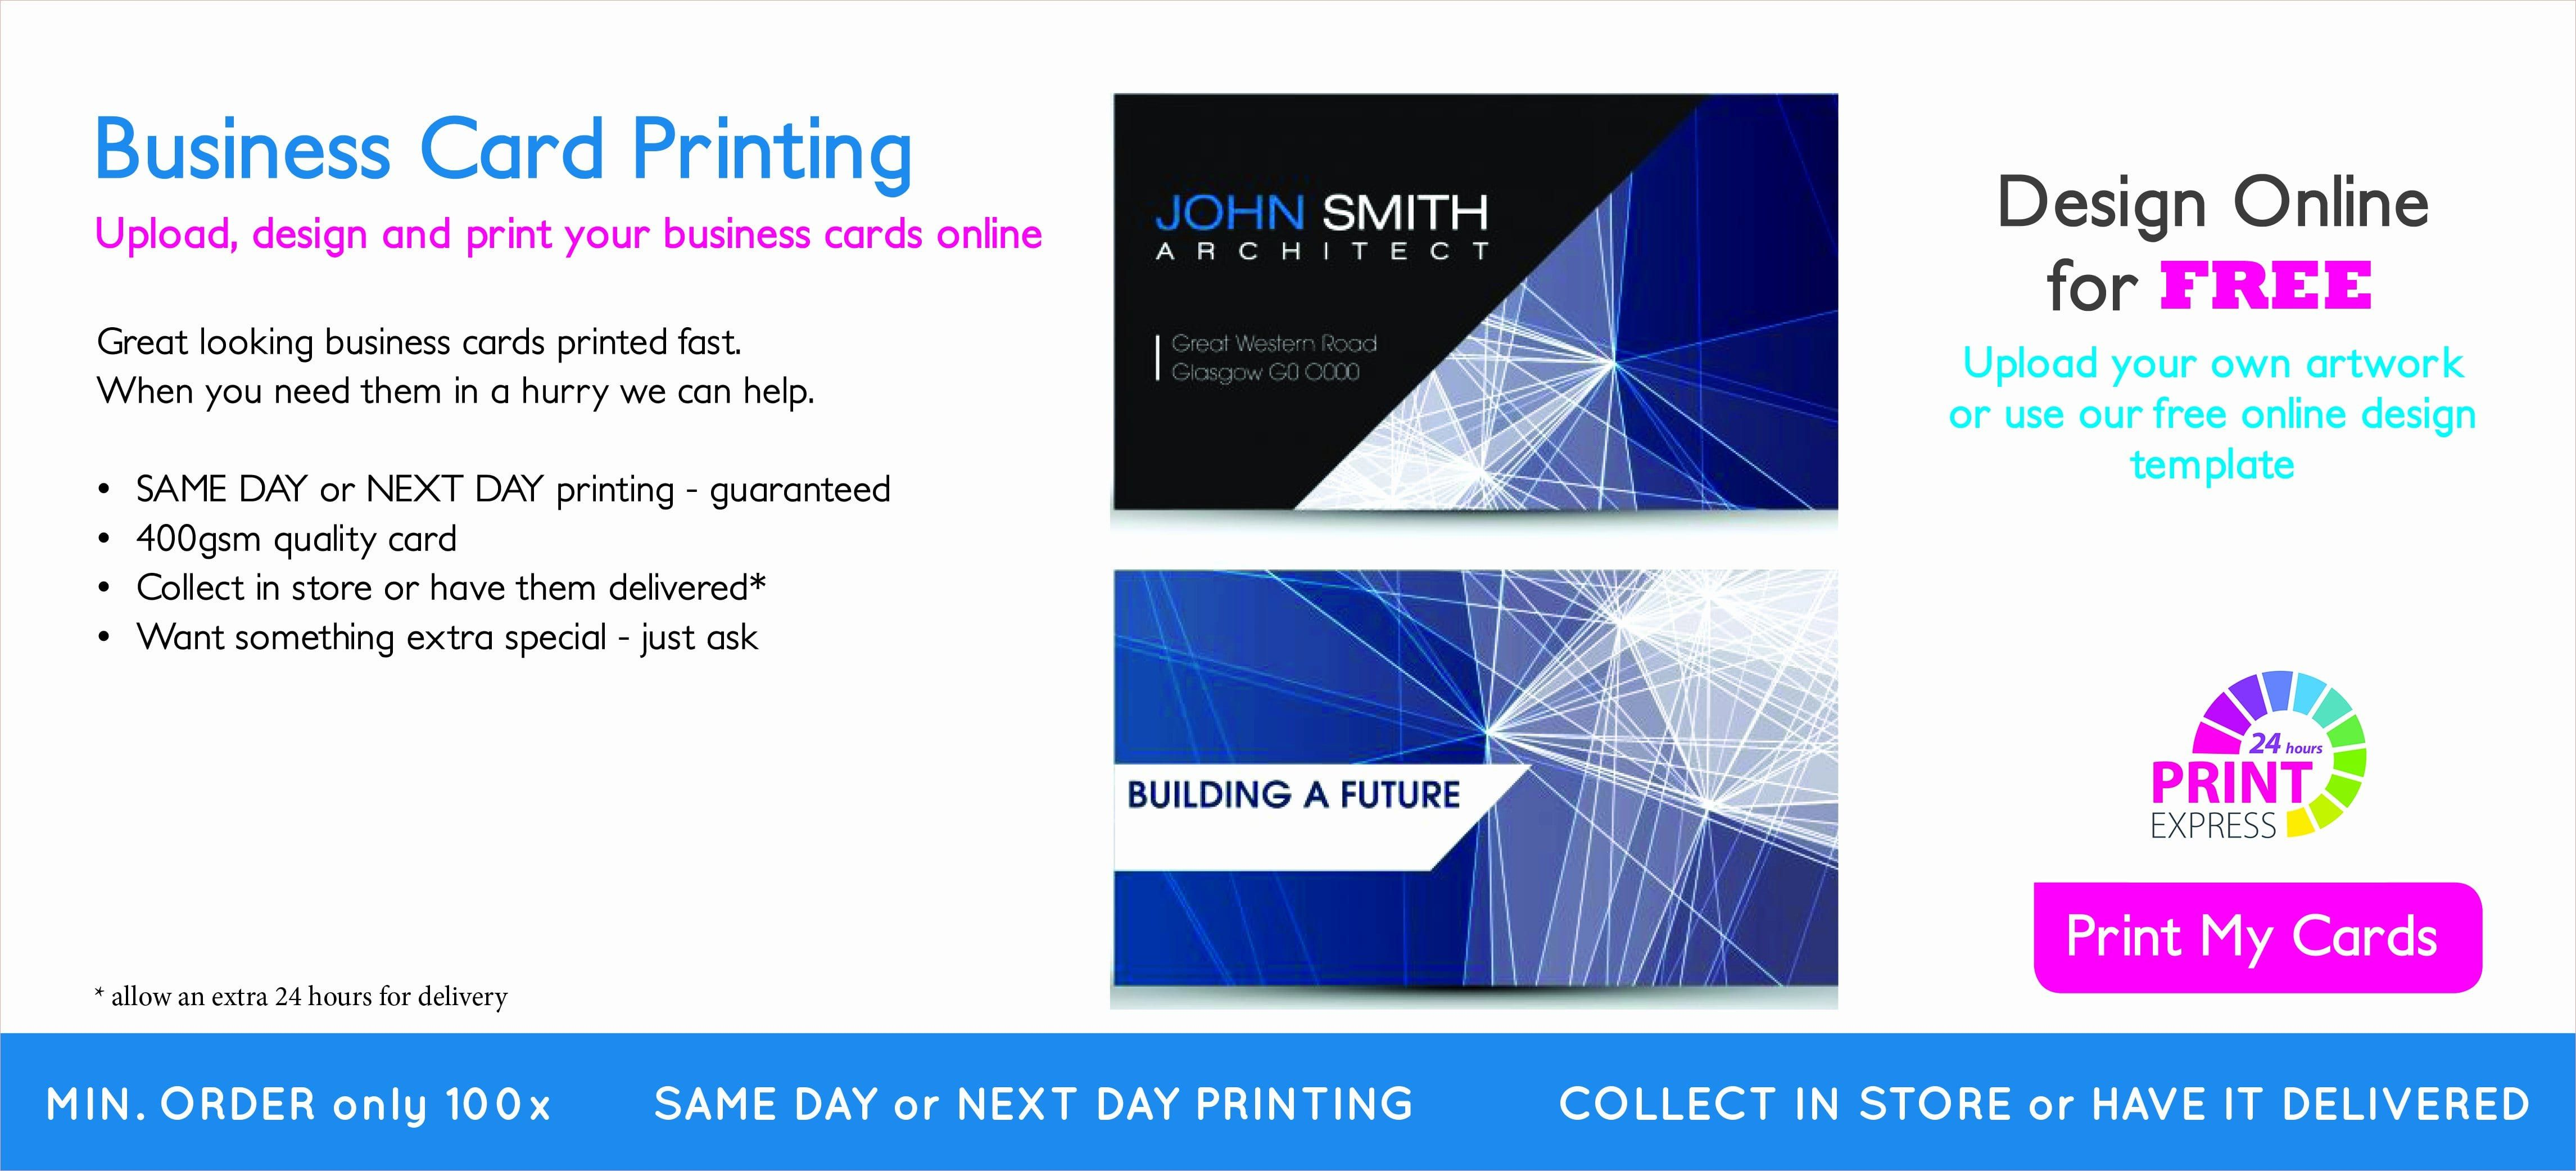 Overnight Prints Business Card Template Printing Business Cards Business Card Template Free Printable Business Cards